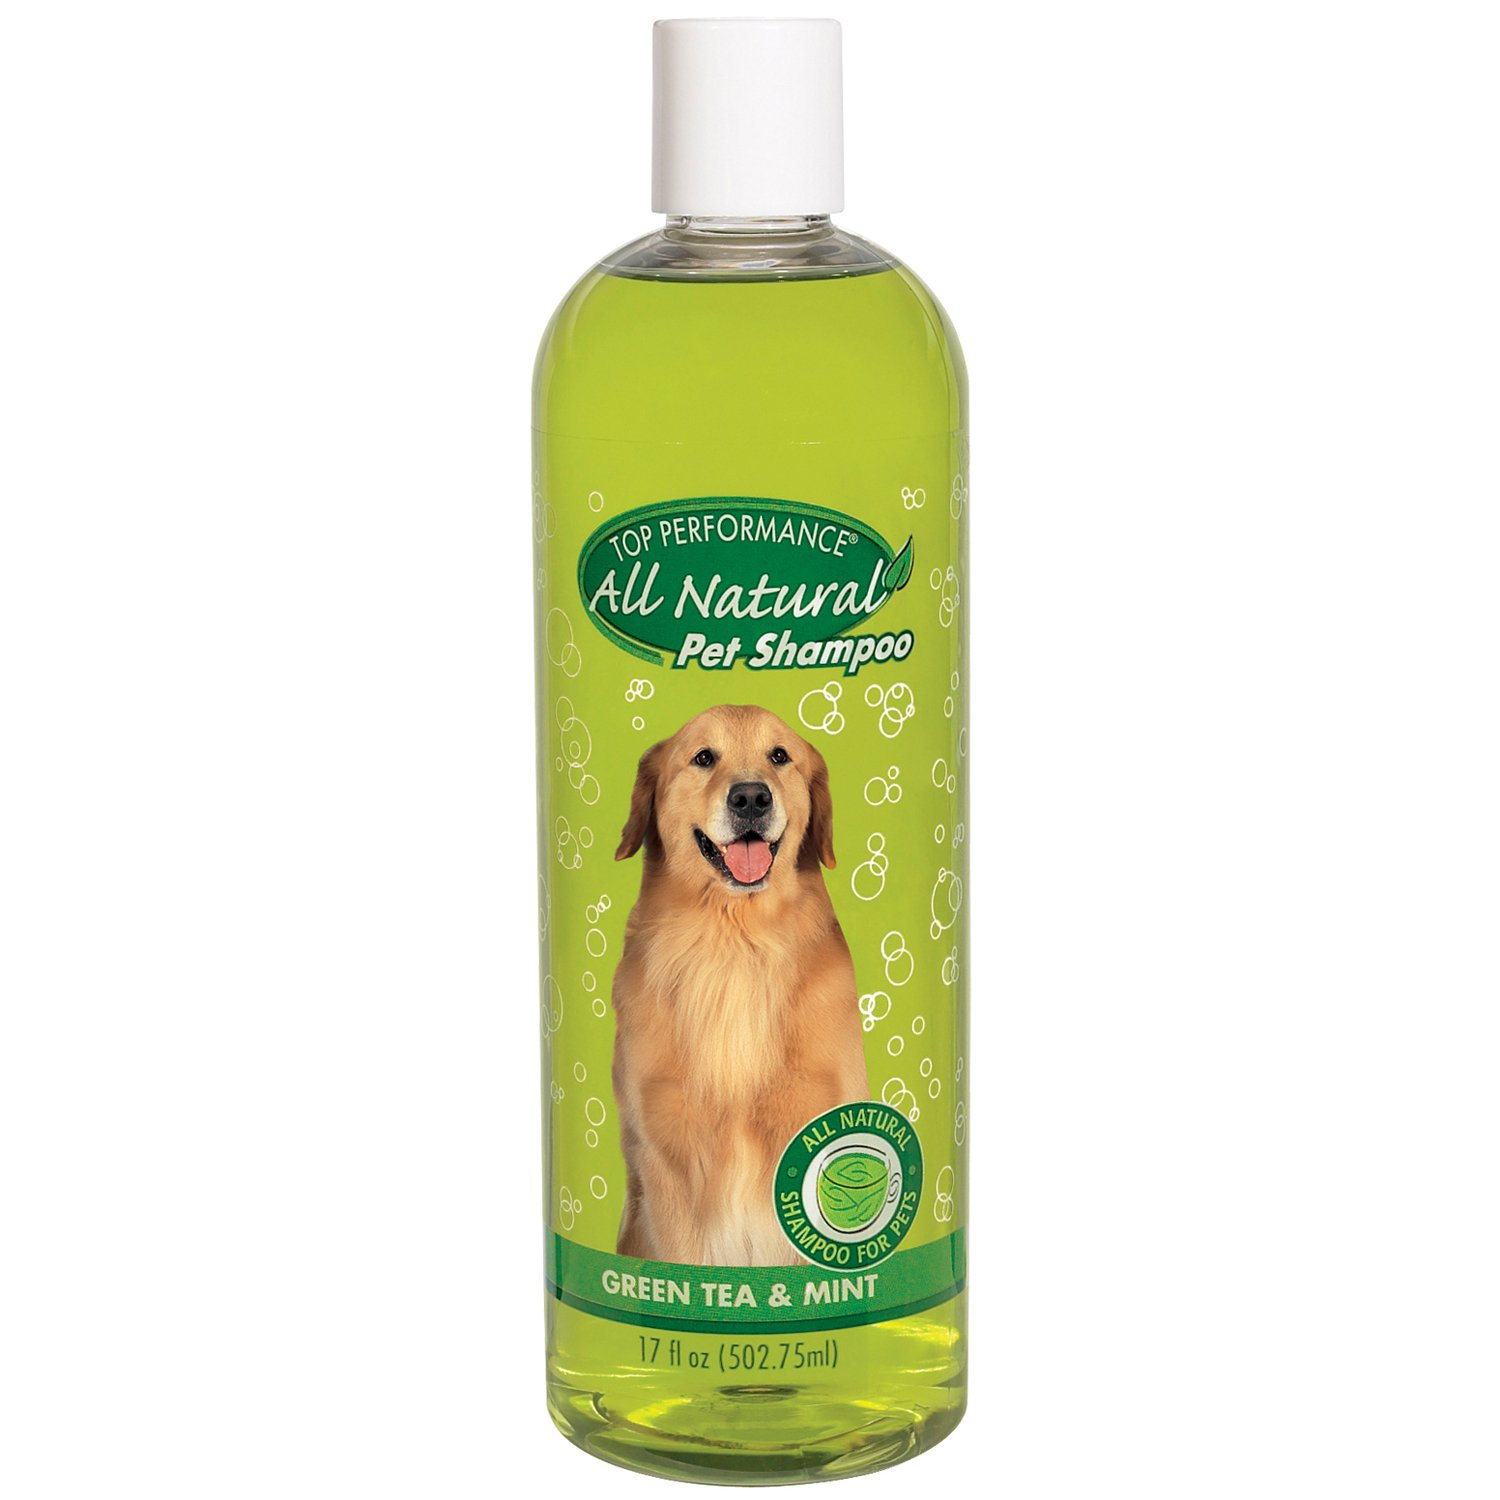 Top Performance Green Tea and Mint Shampoo for Puppies and Kittens – Natural Shampoo to Safely Bathe Young Pets, 17 Oz.